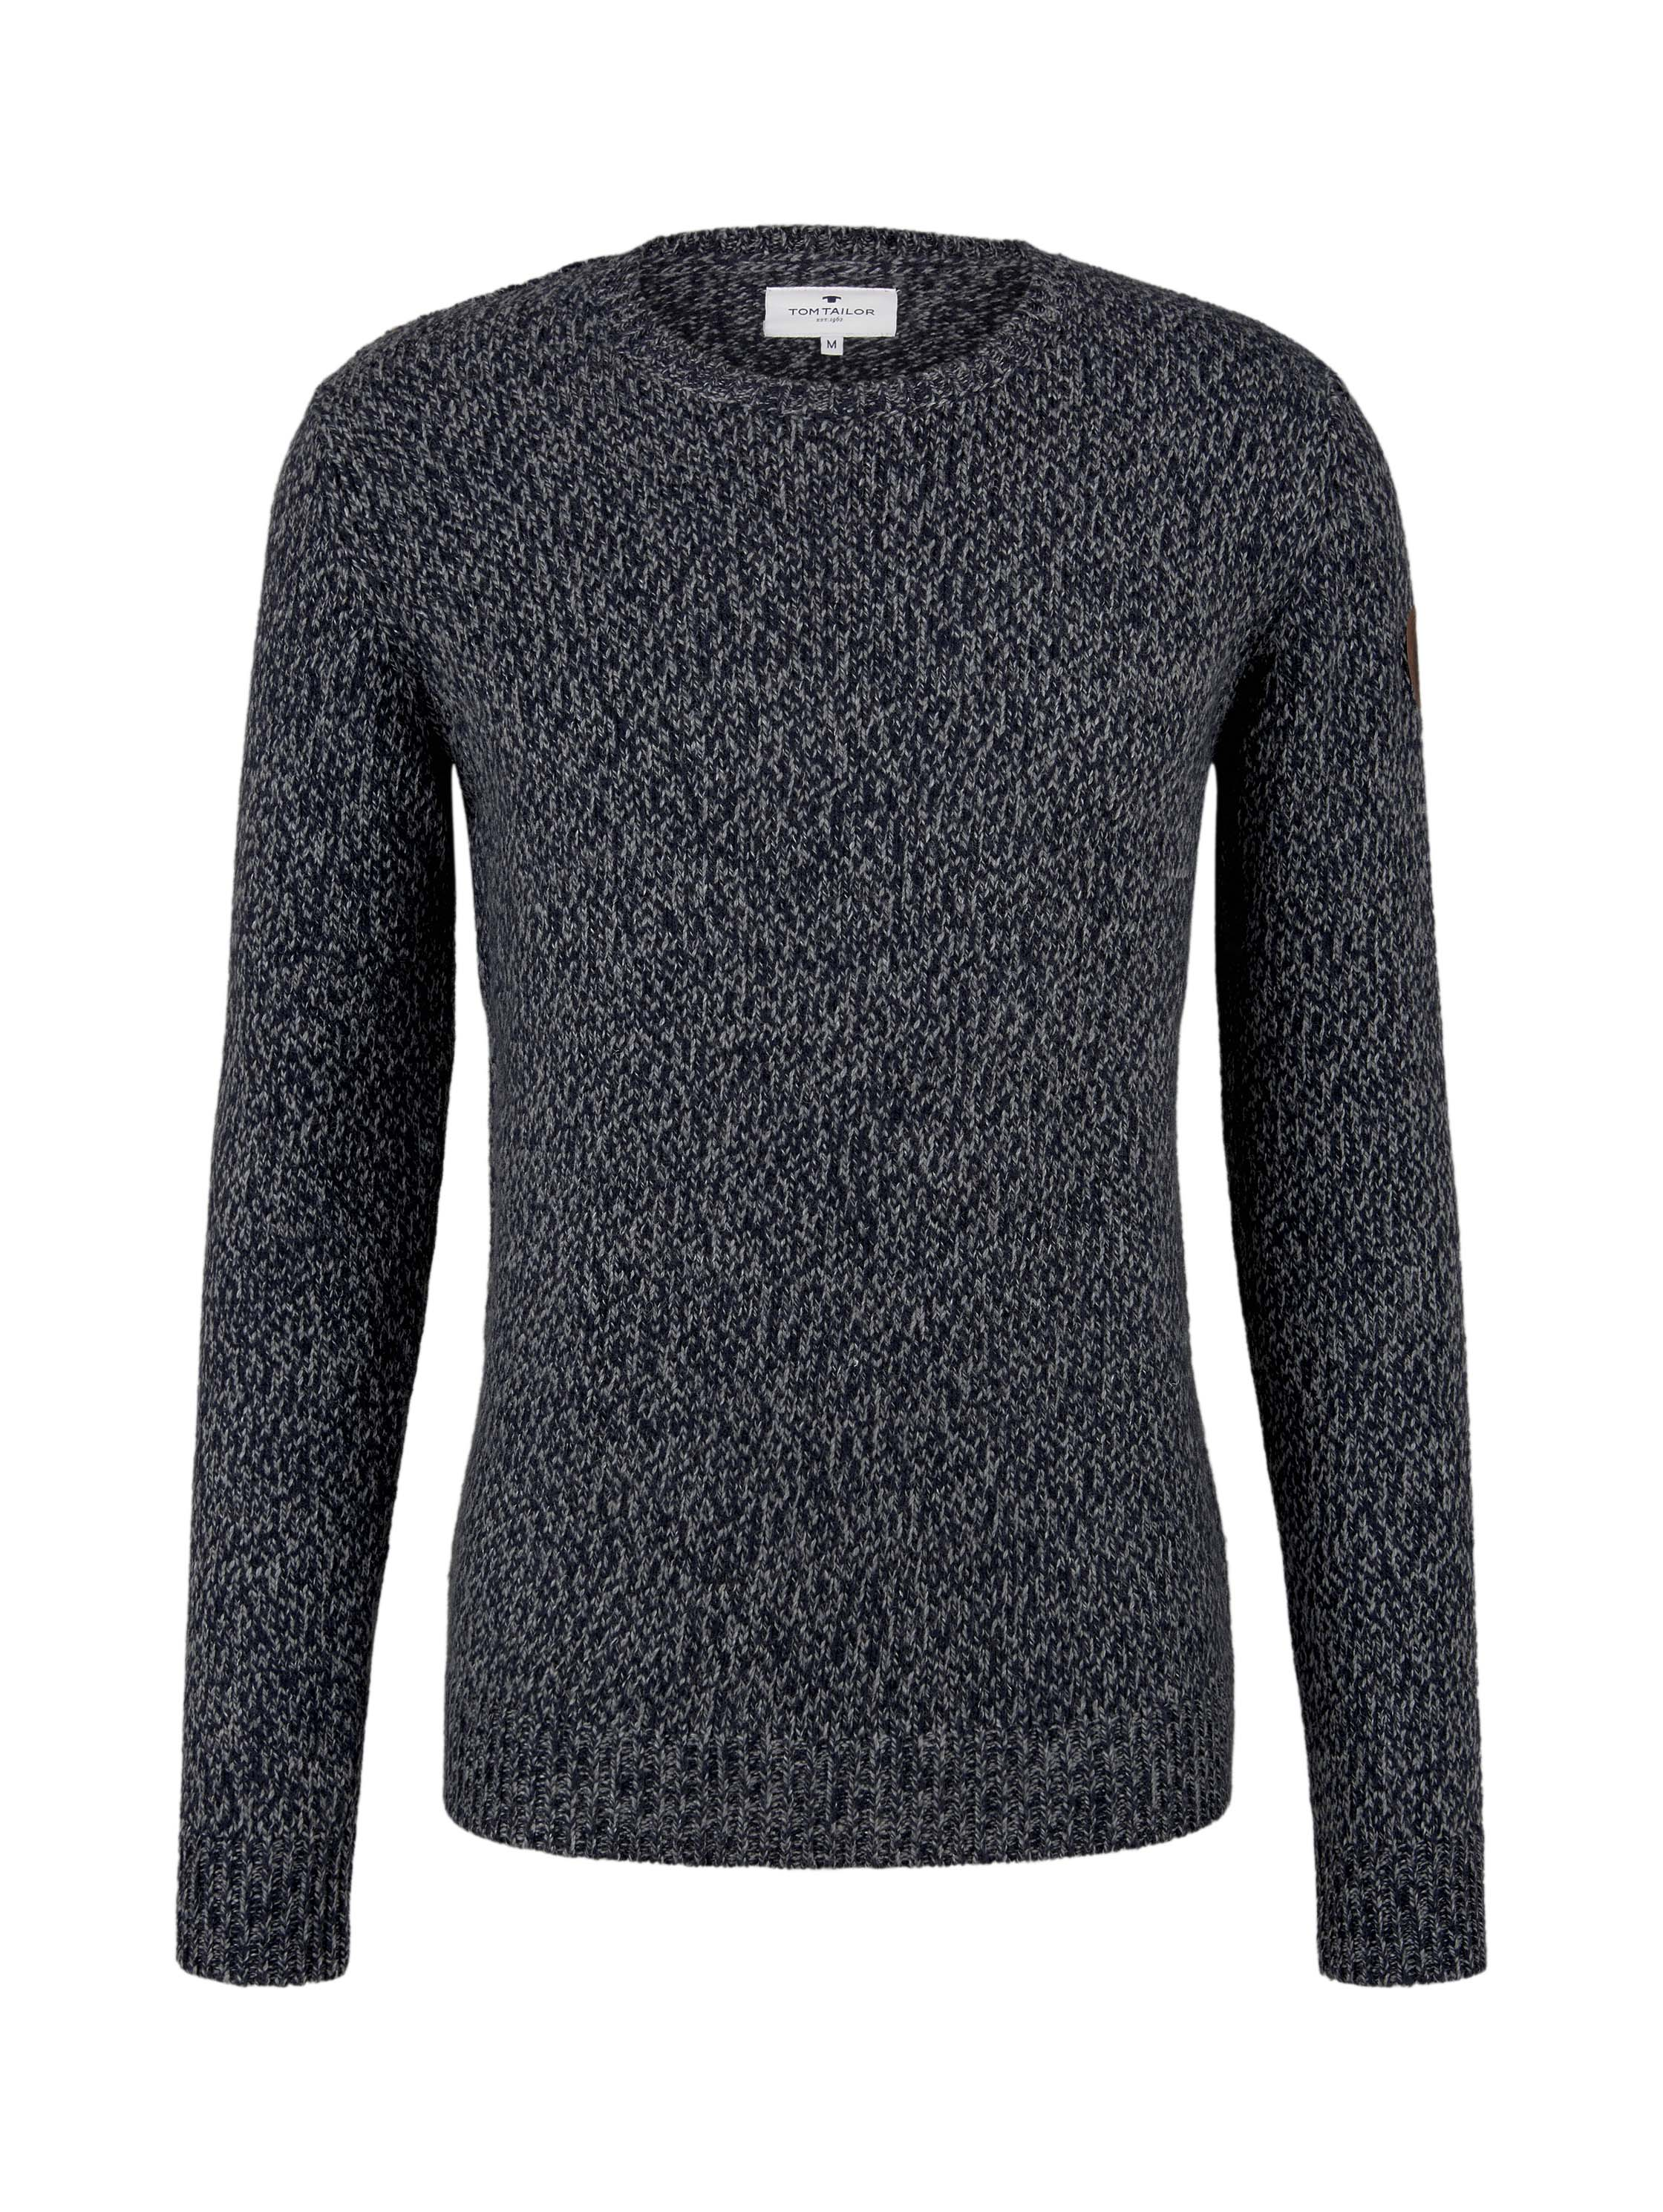 cosy sweater, navy grey mouline